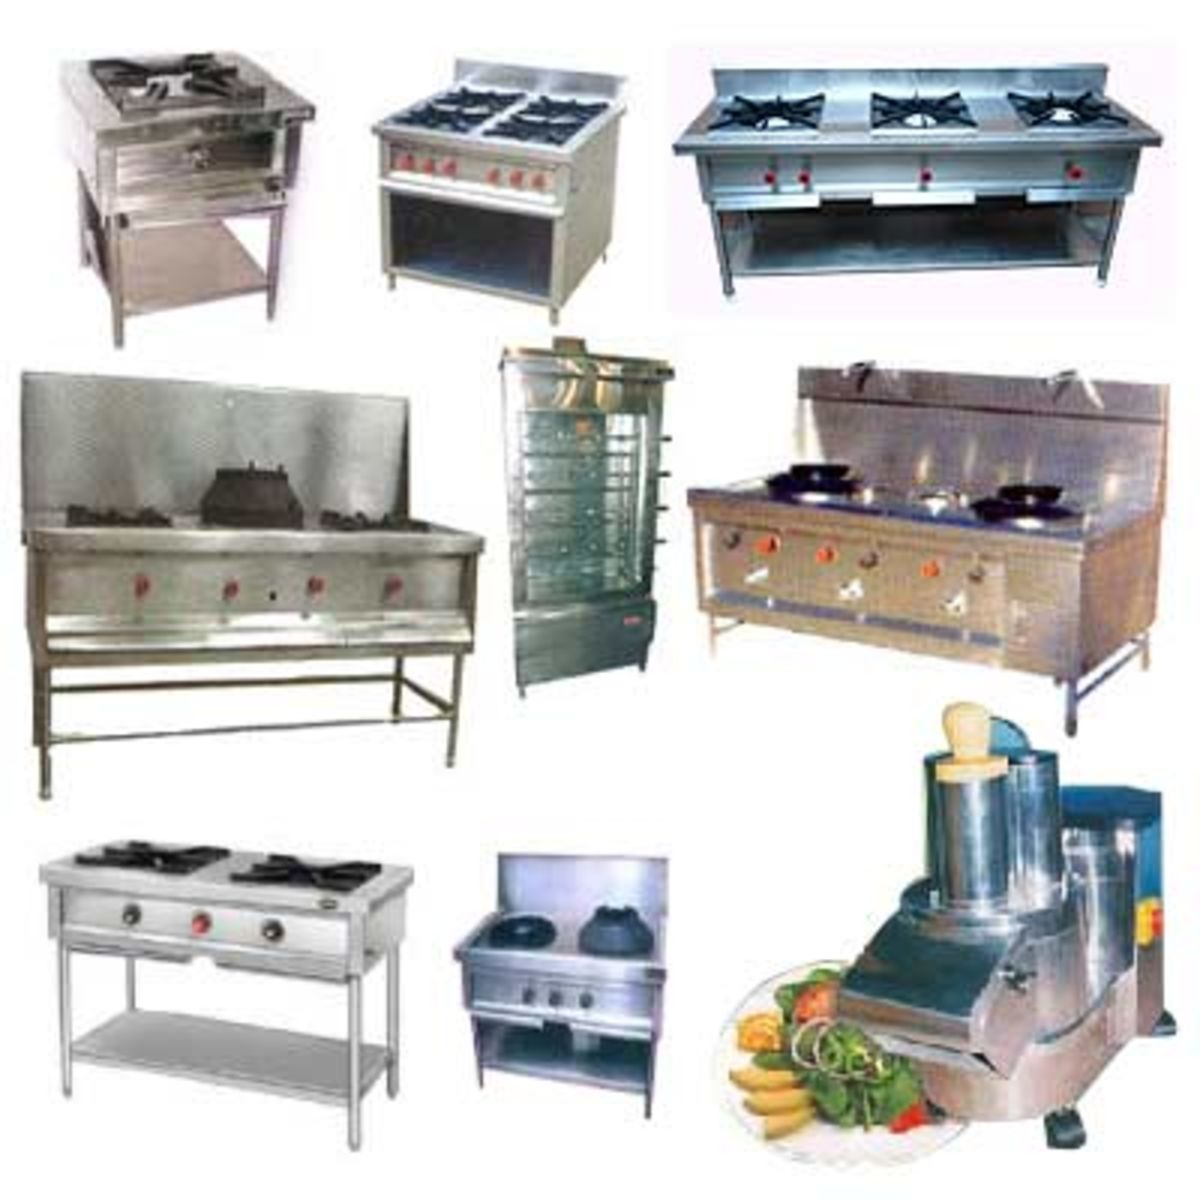 Headline for Top 5 Commercial Kitchen Equipment Suppliers in Australia